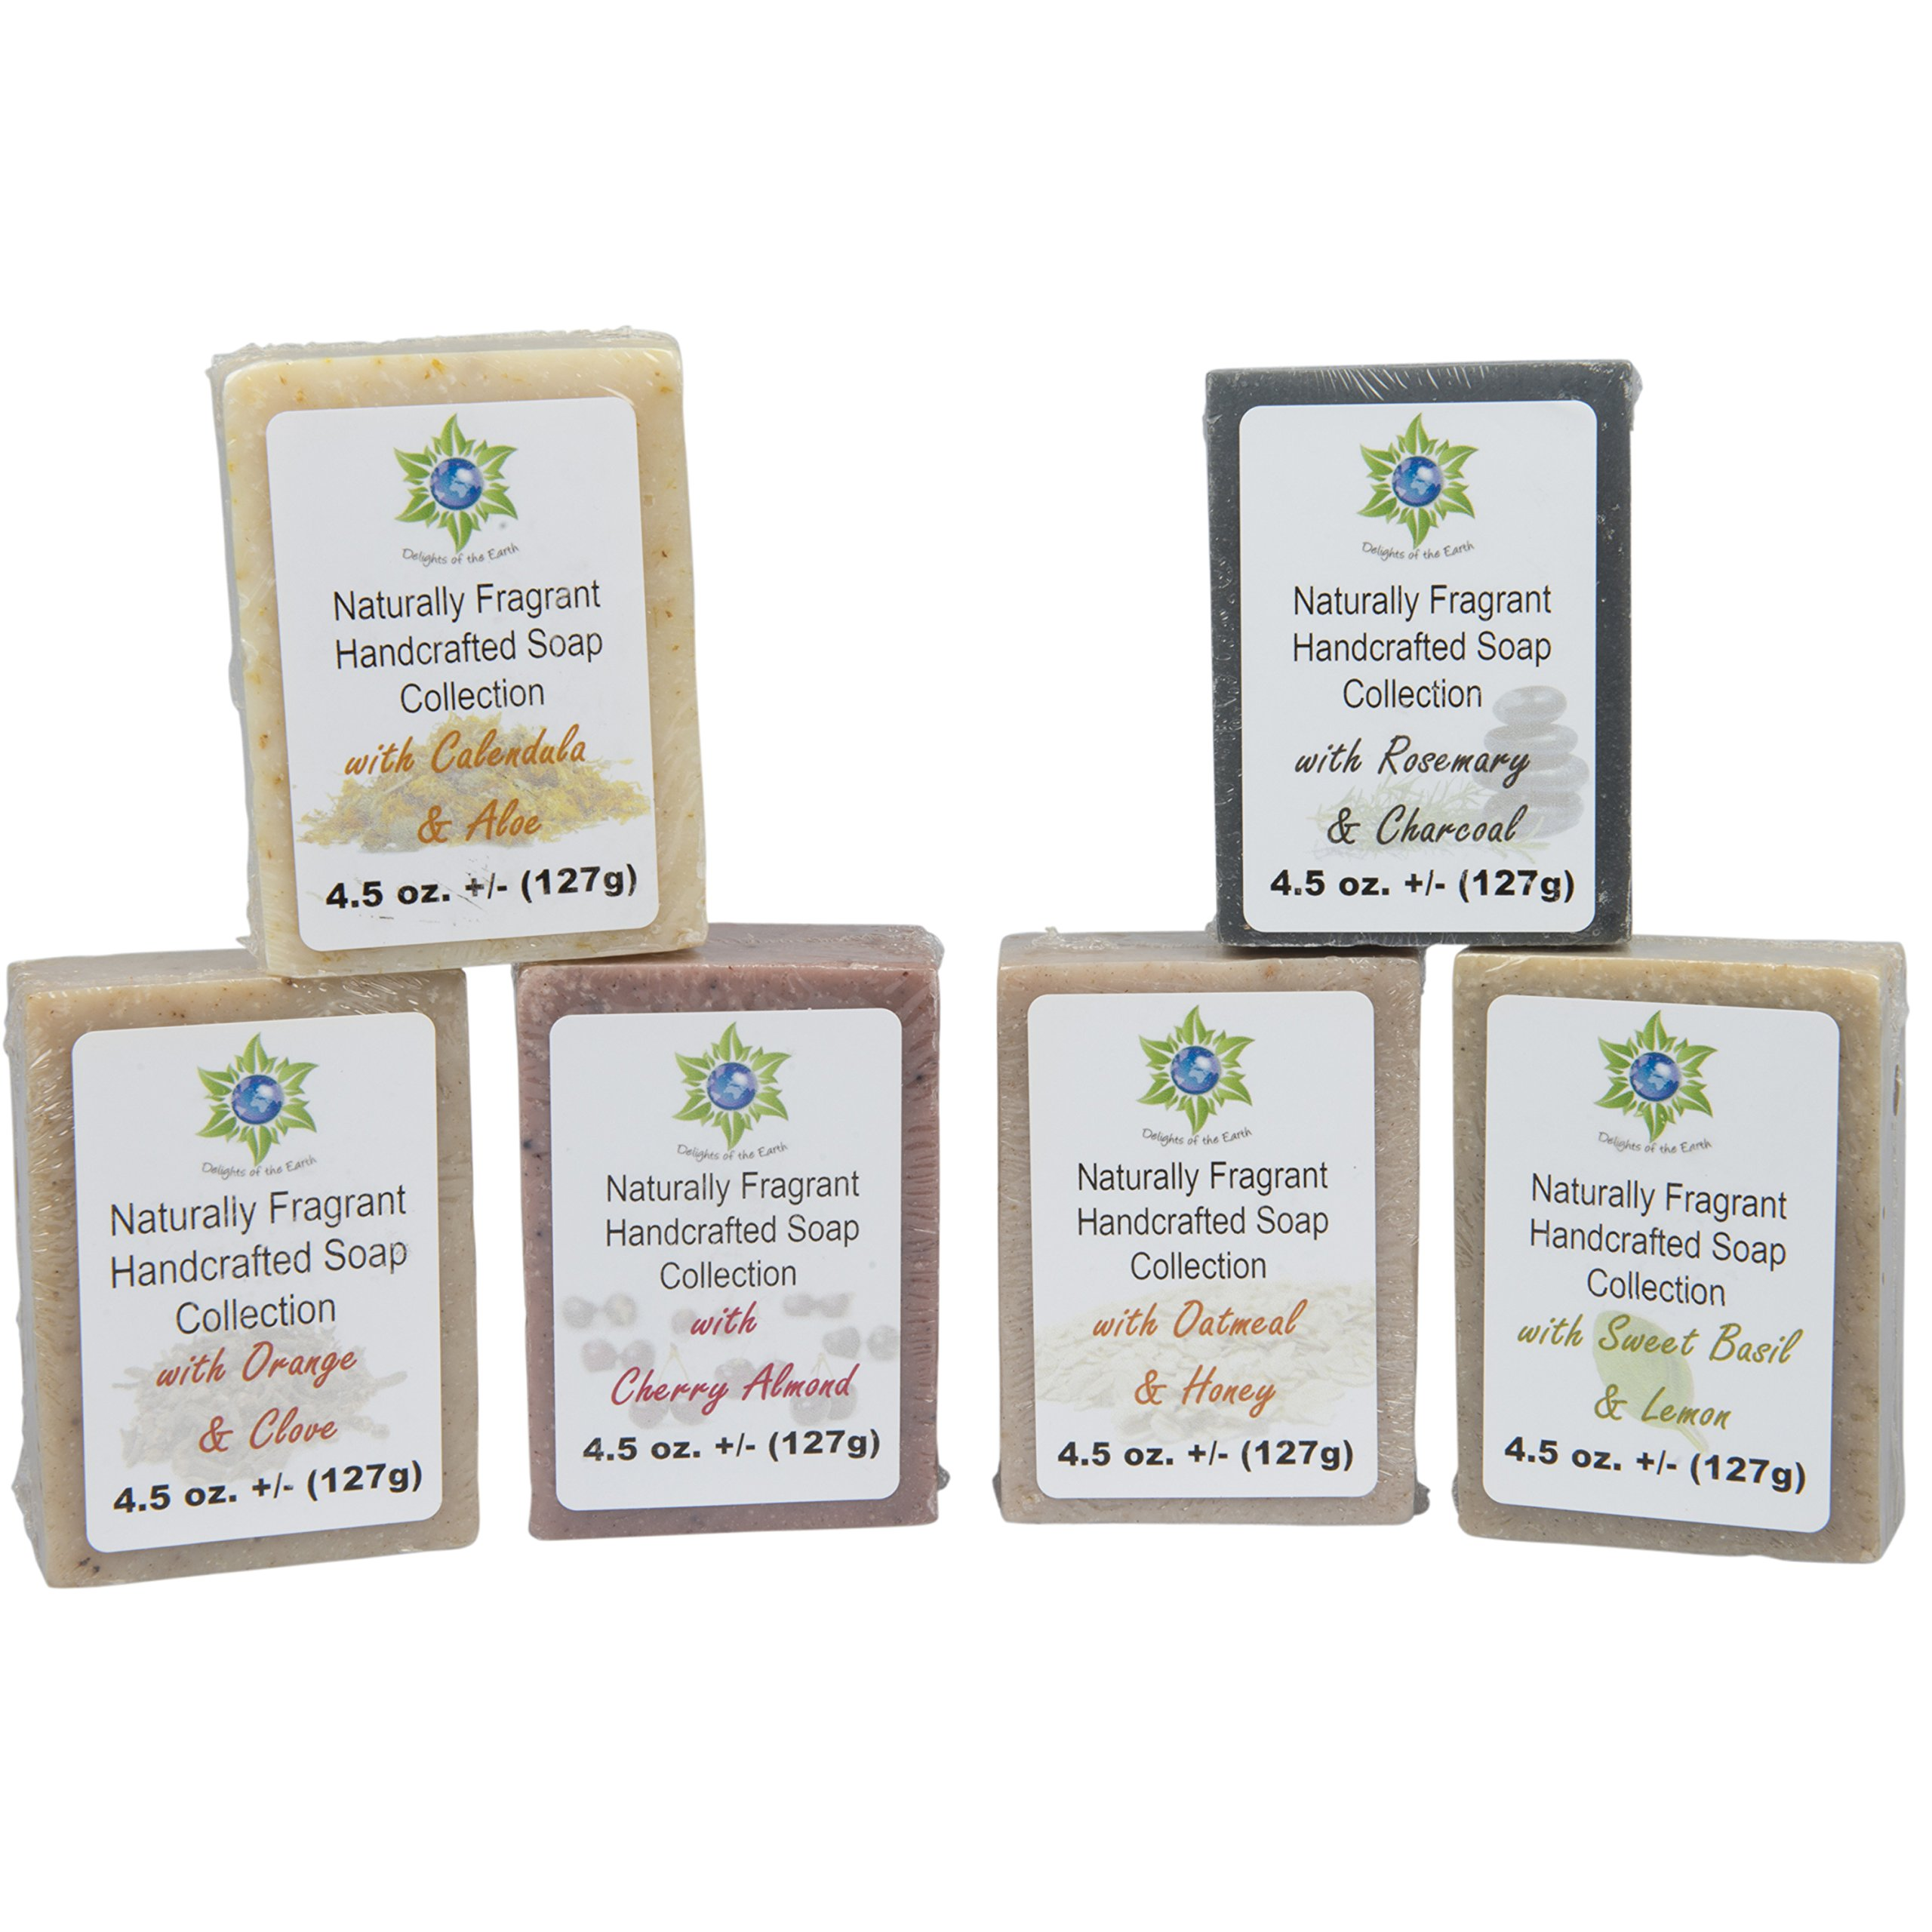 Soap Bar Variety Pack - All Natural Hand Poured Soap Bars - 6 Different Relaxing Scented Soaps